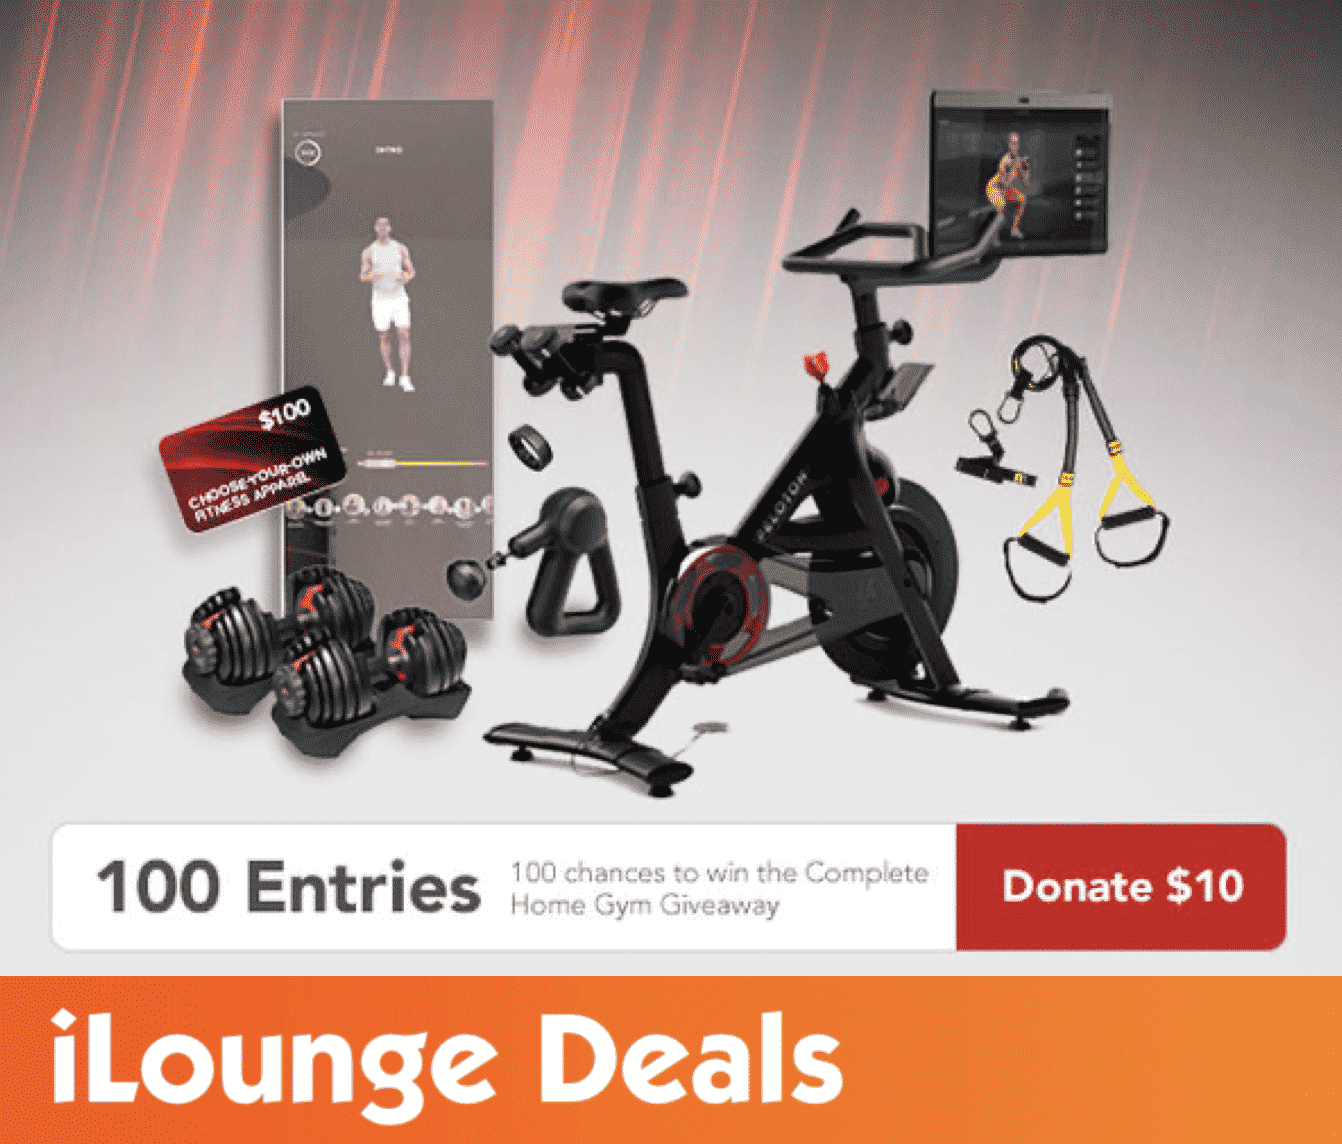 Peloton + Fitness Giveaway - Fundraiser